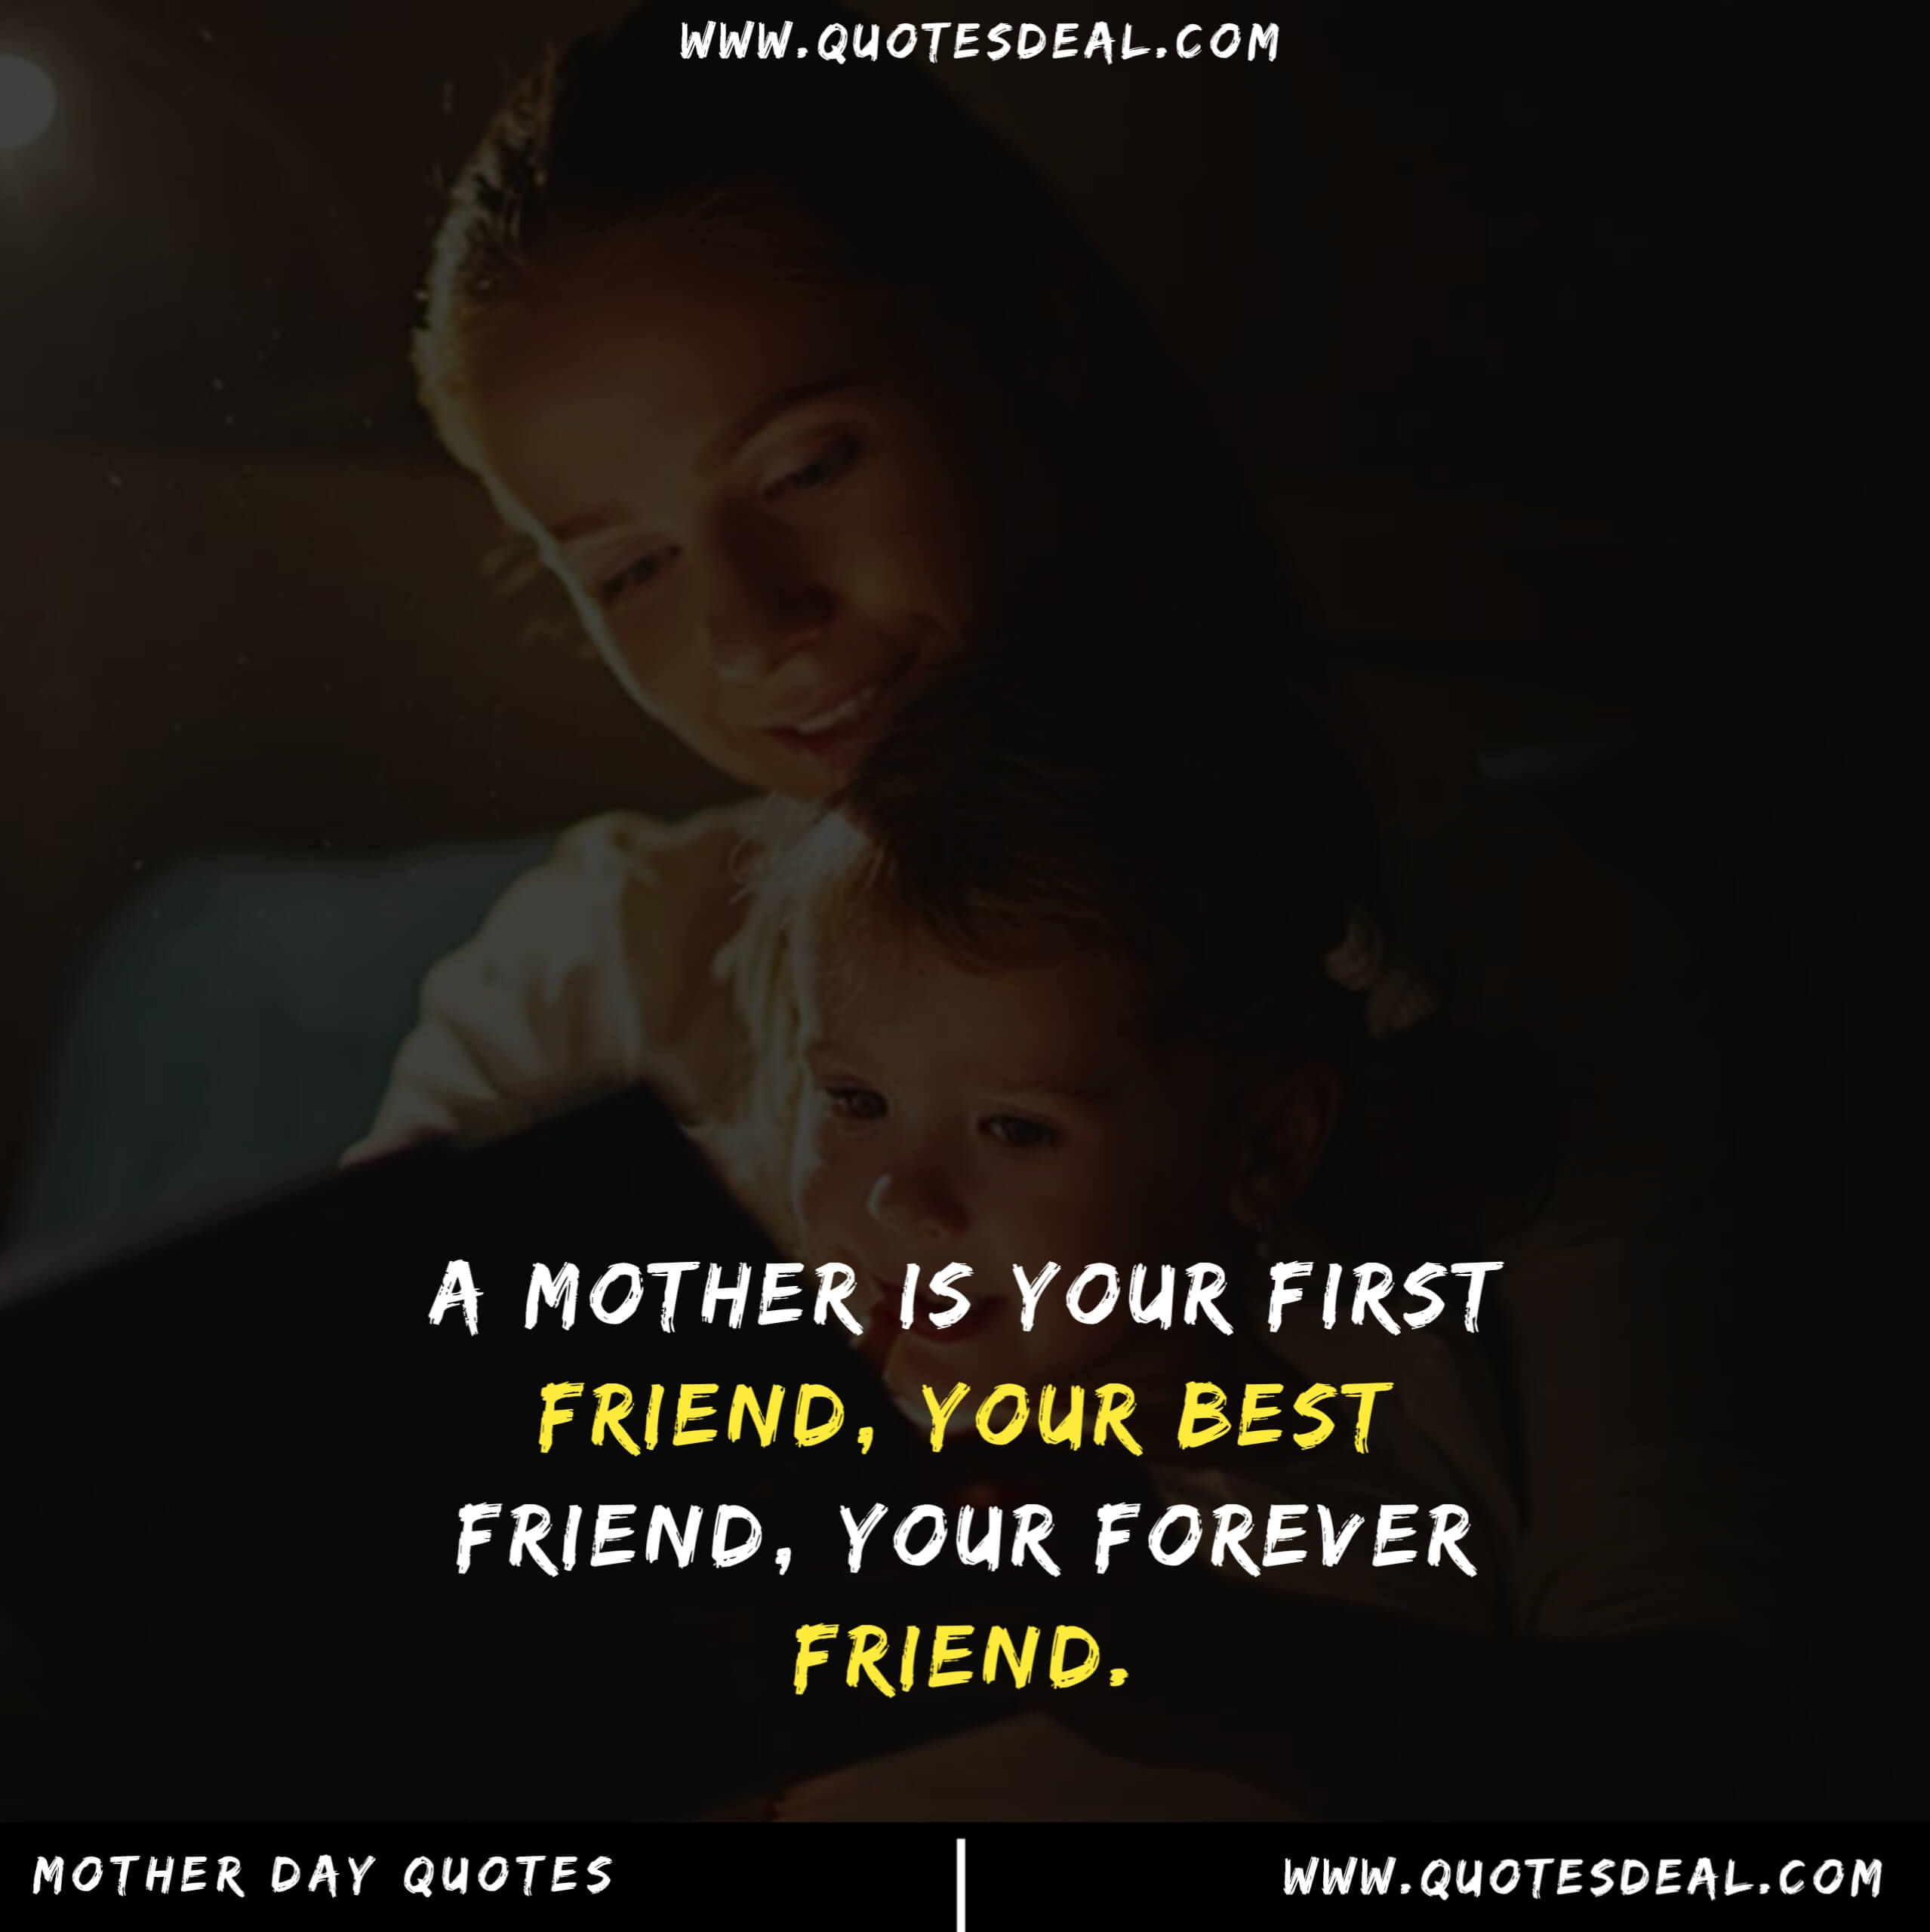 A mother is your first friend